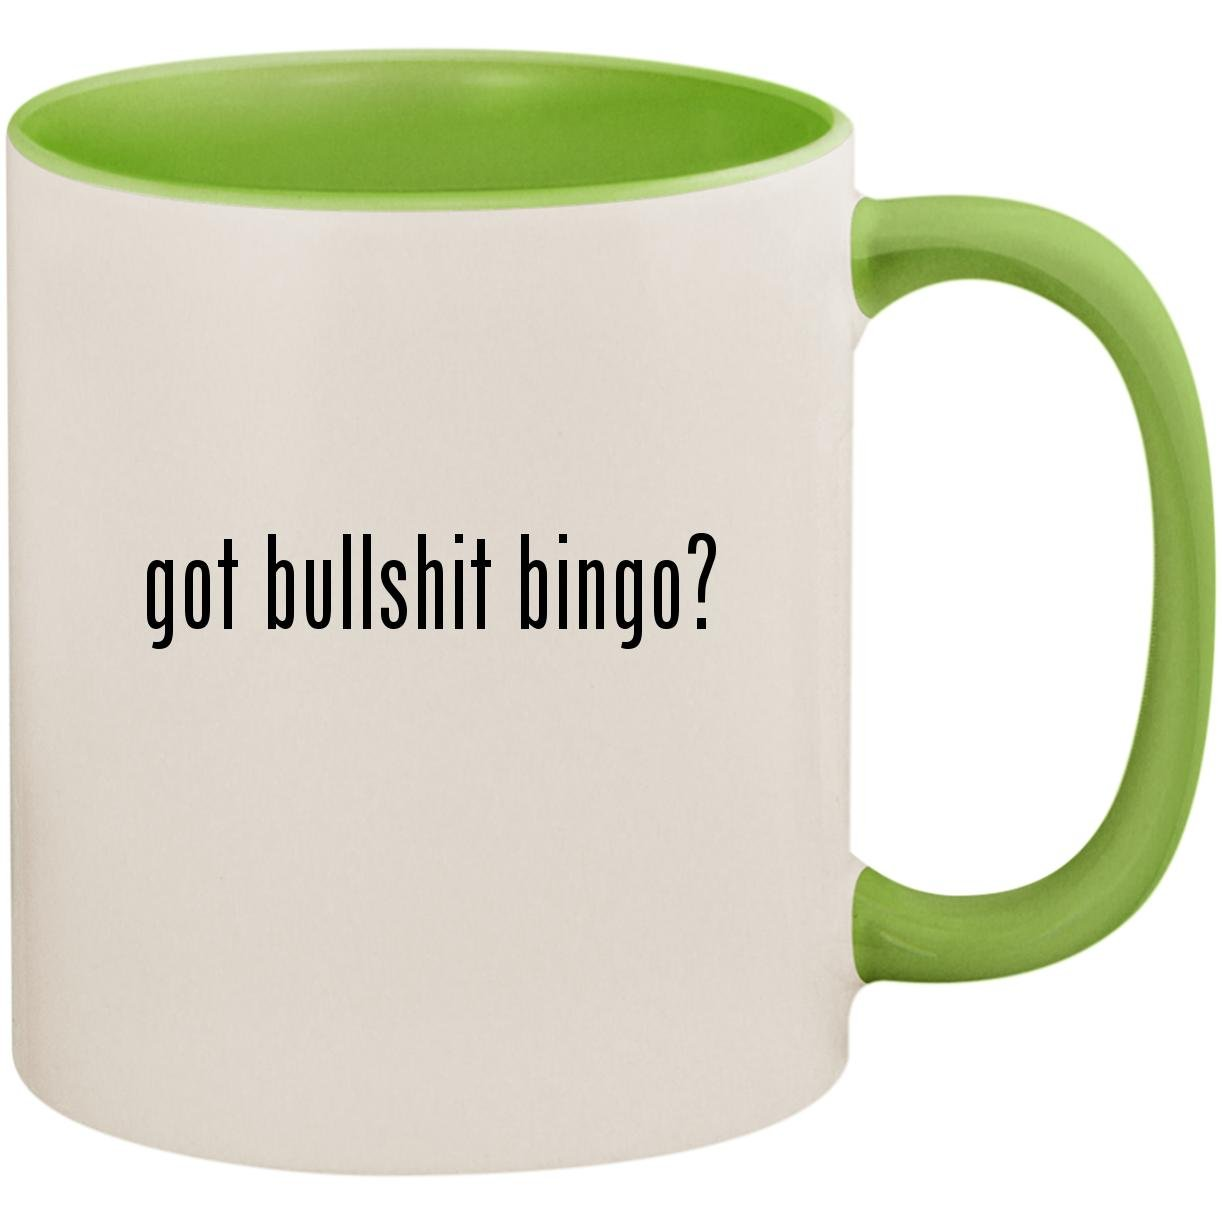 got bullshit bingo? - 11oz Ceramic Colored Inside and Handle Coffee Mug Cup, Light Green